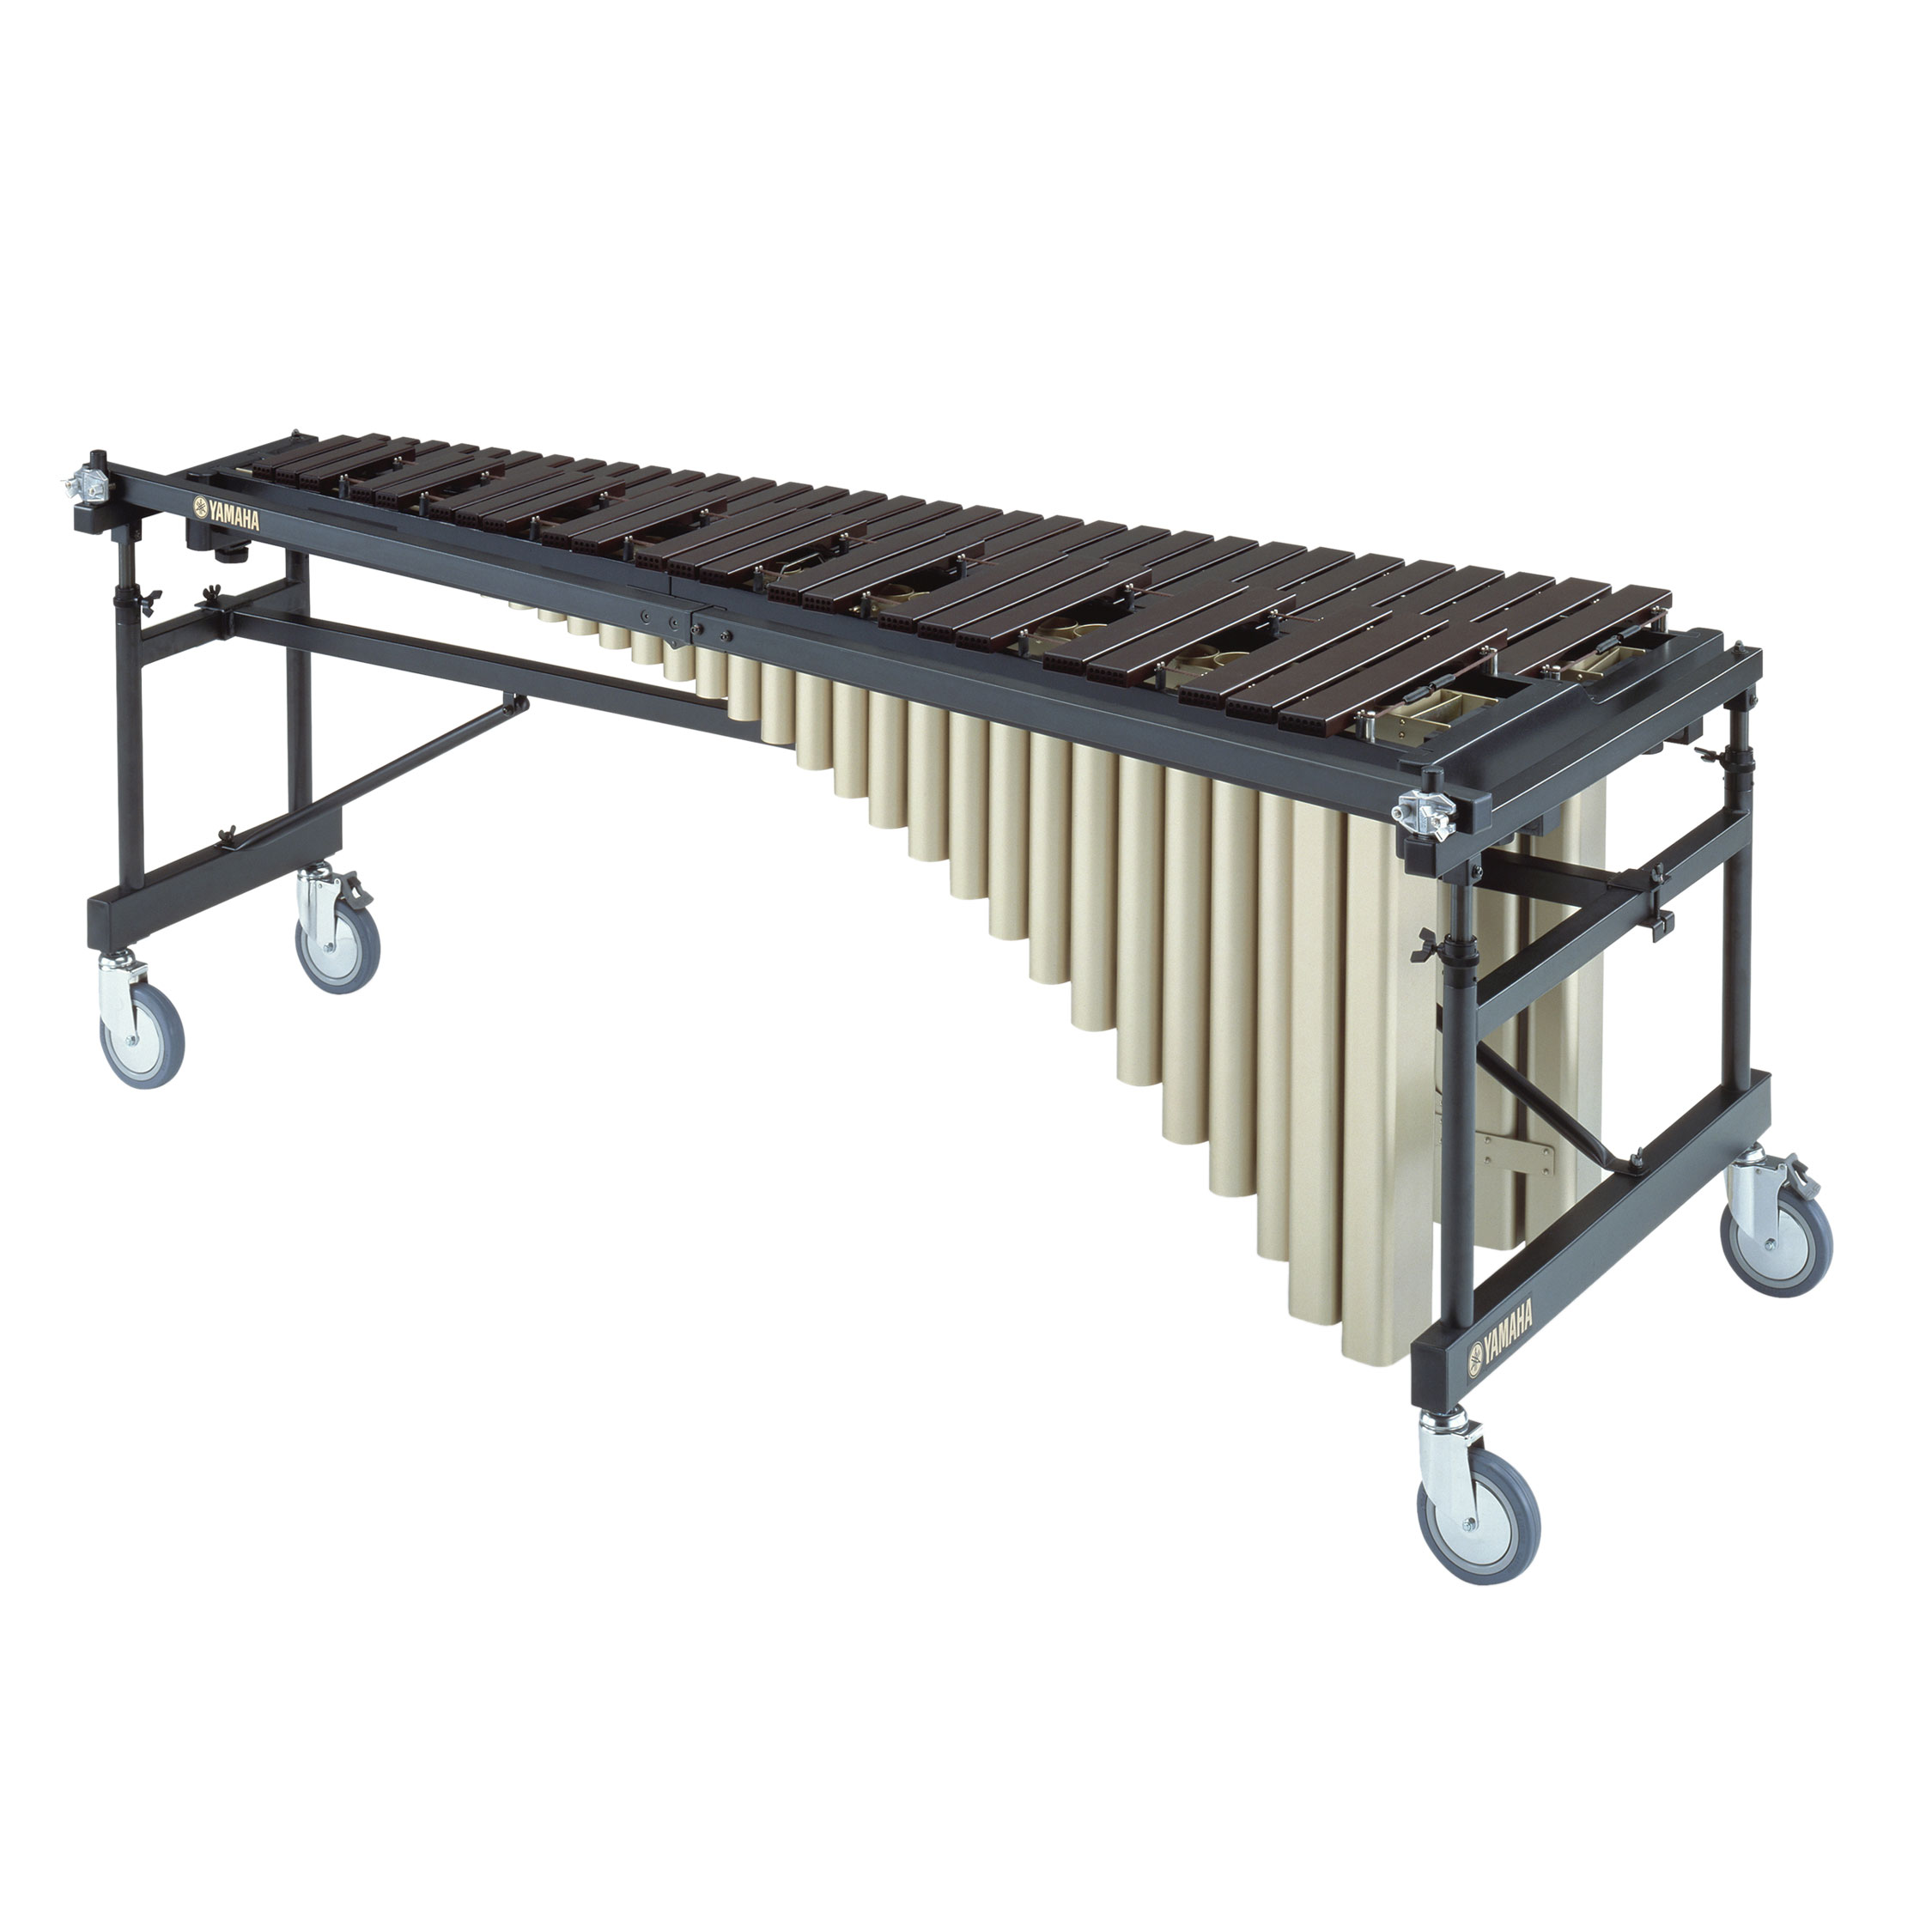 Yamaha 4.5 Octave Acoustalon Marimba with Multi Frame II and drop cover